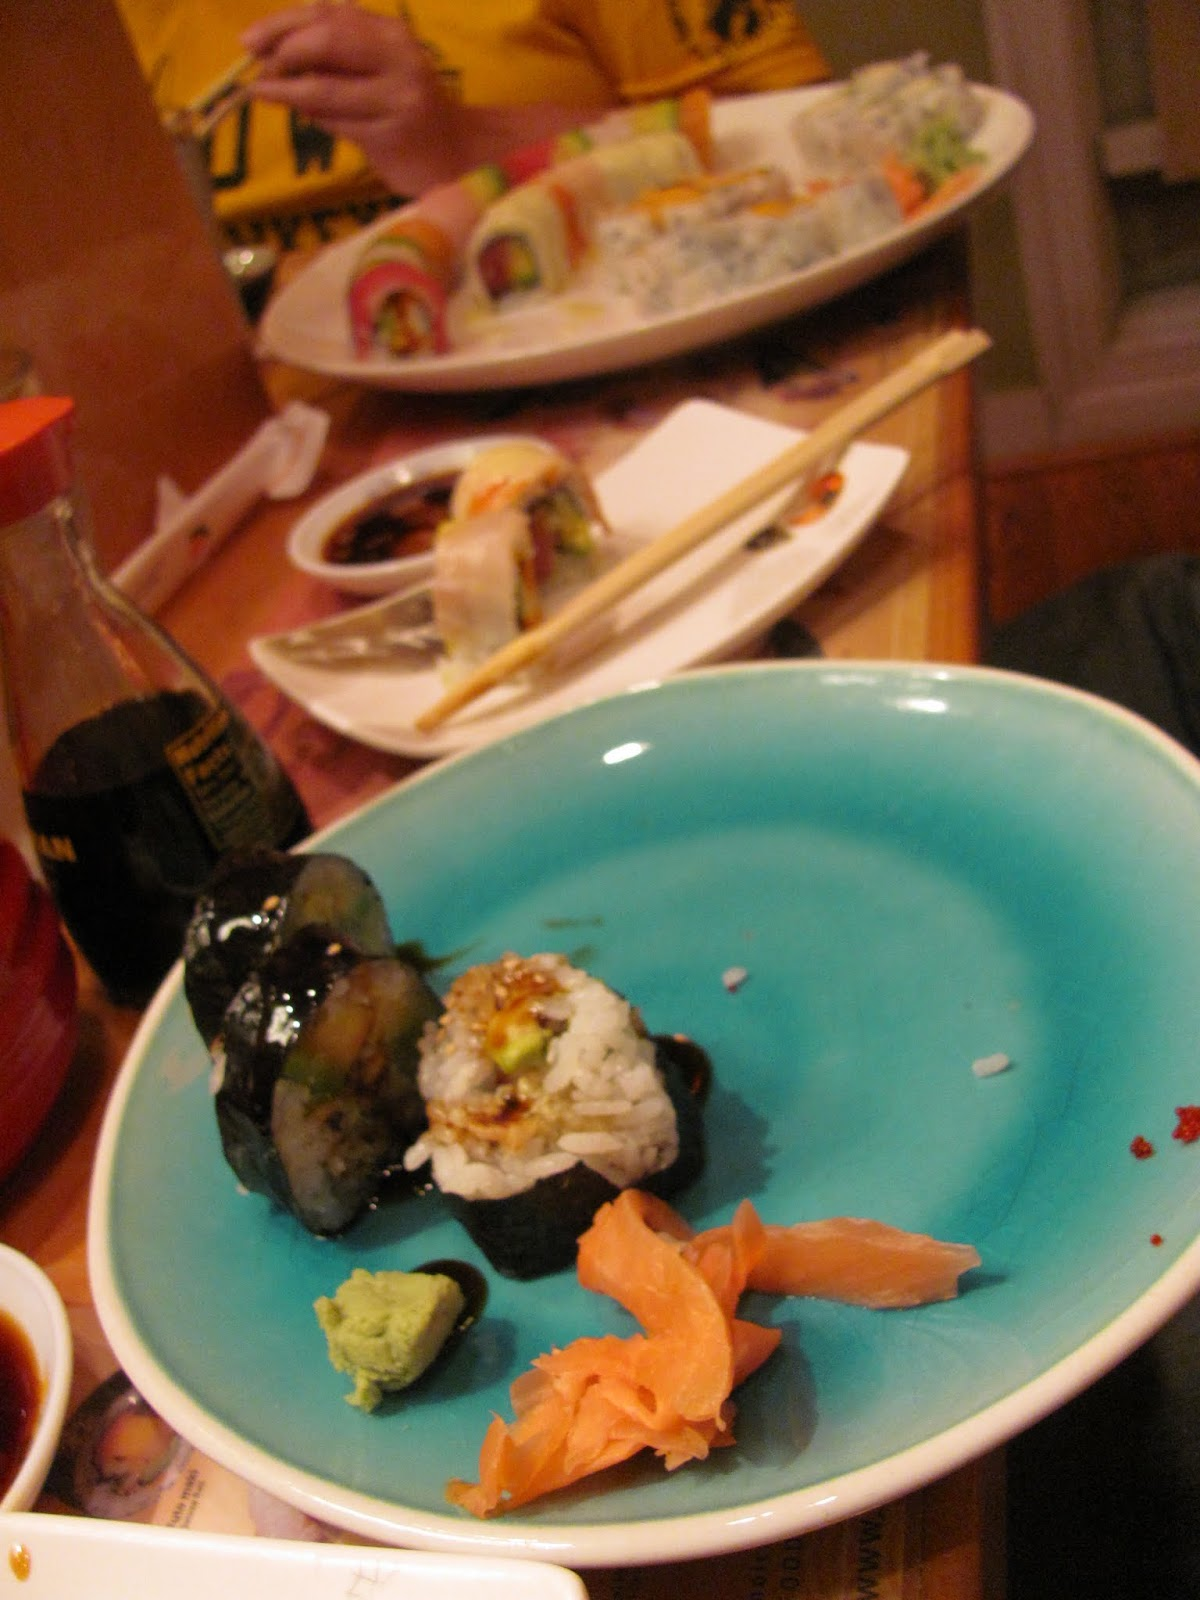 Partially eaten plate of sushi in Alexandria, VA